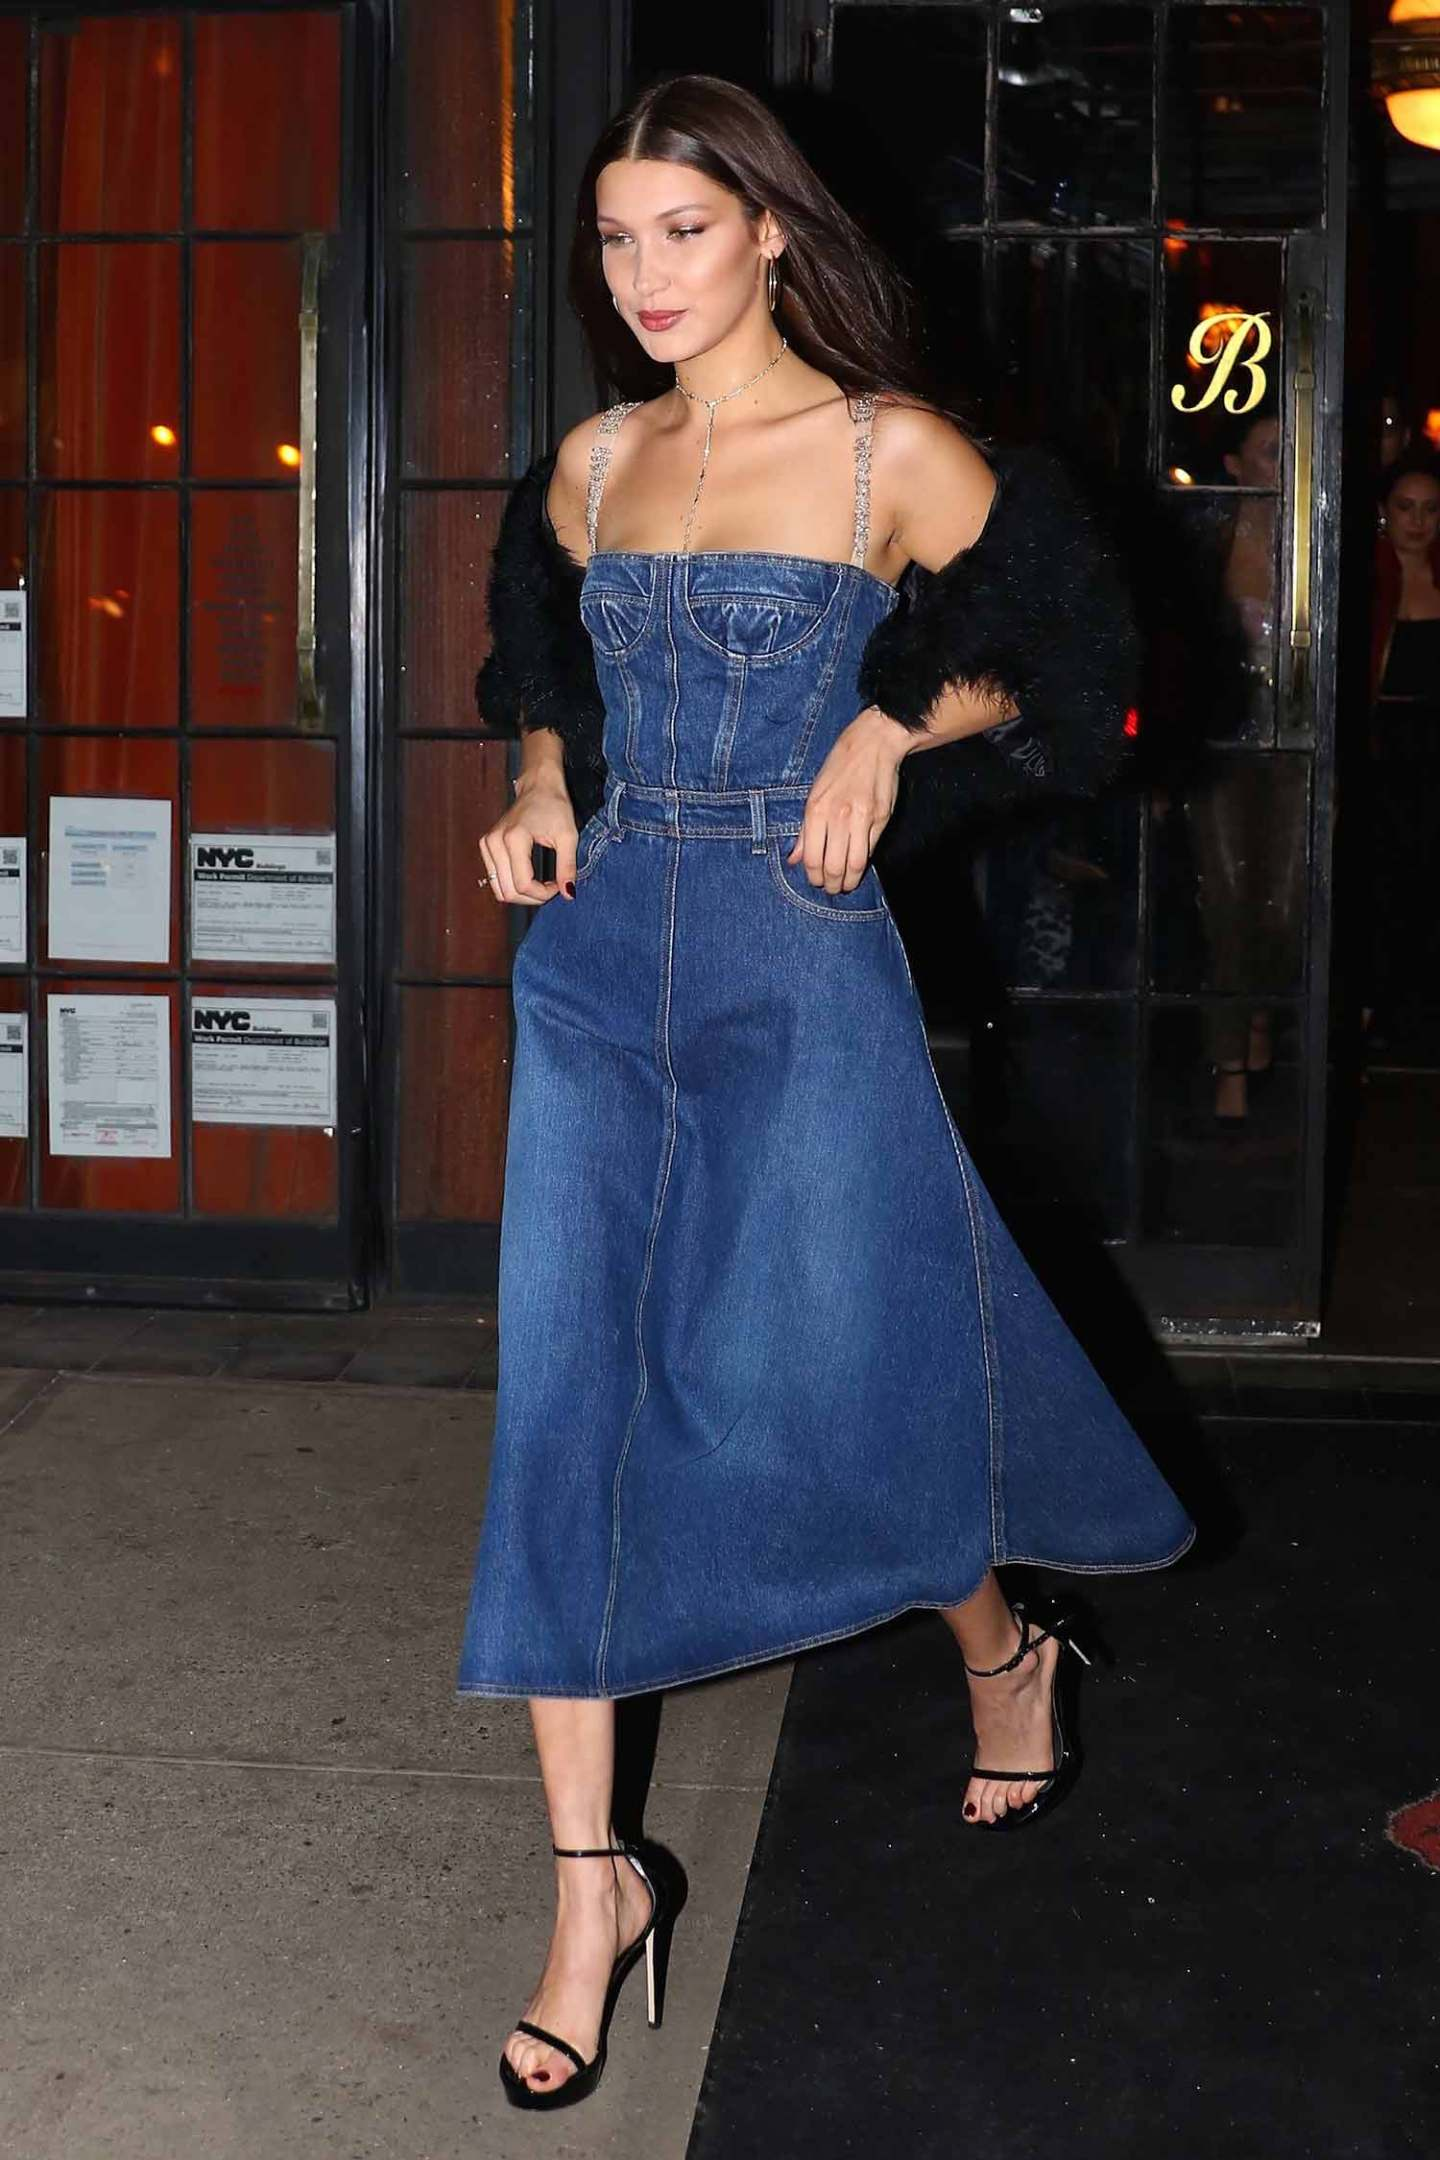 bella-hadid-dior-denim-dress